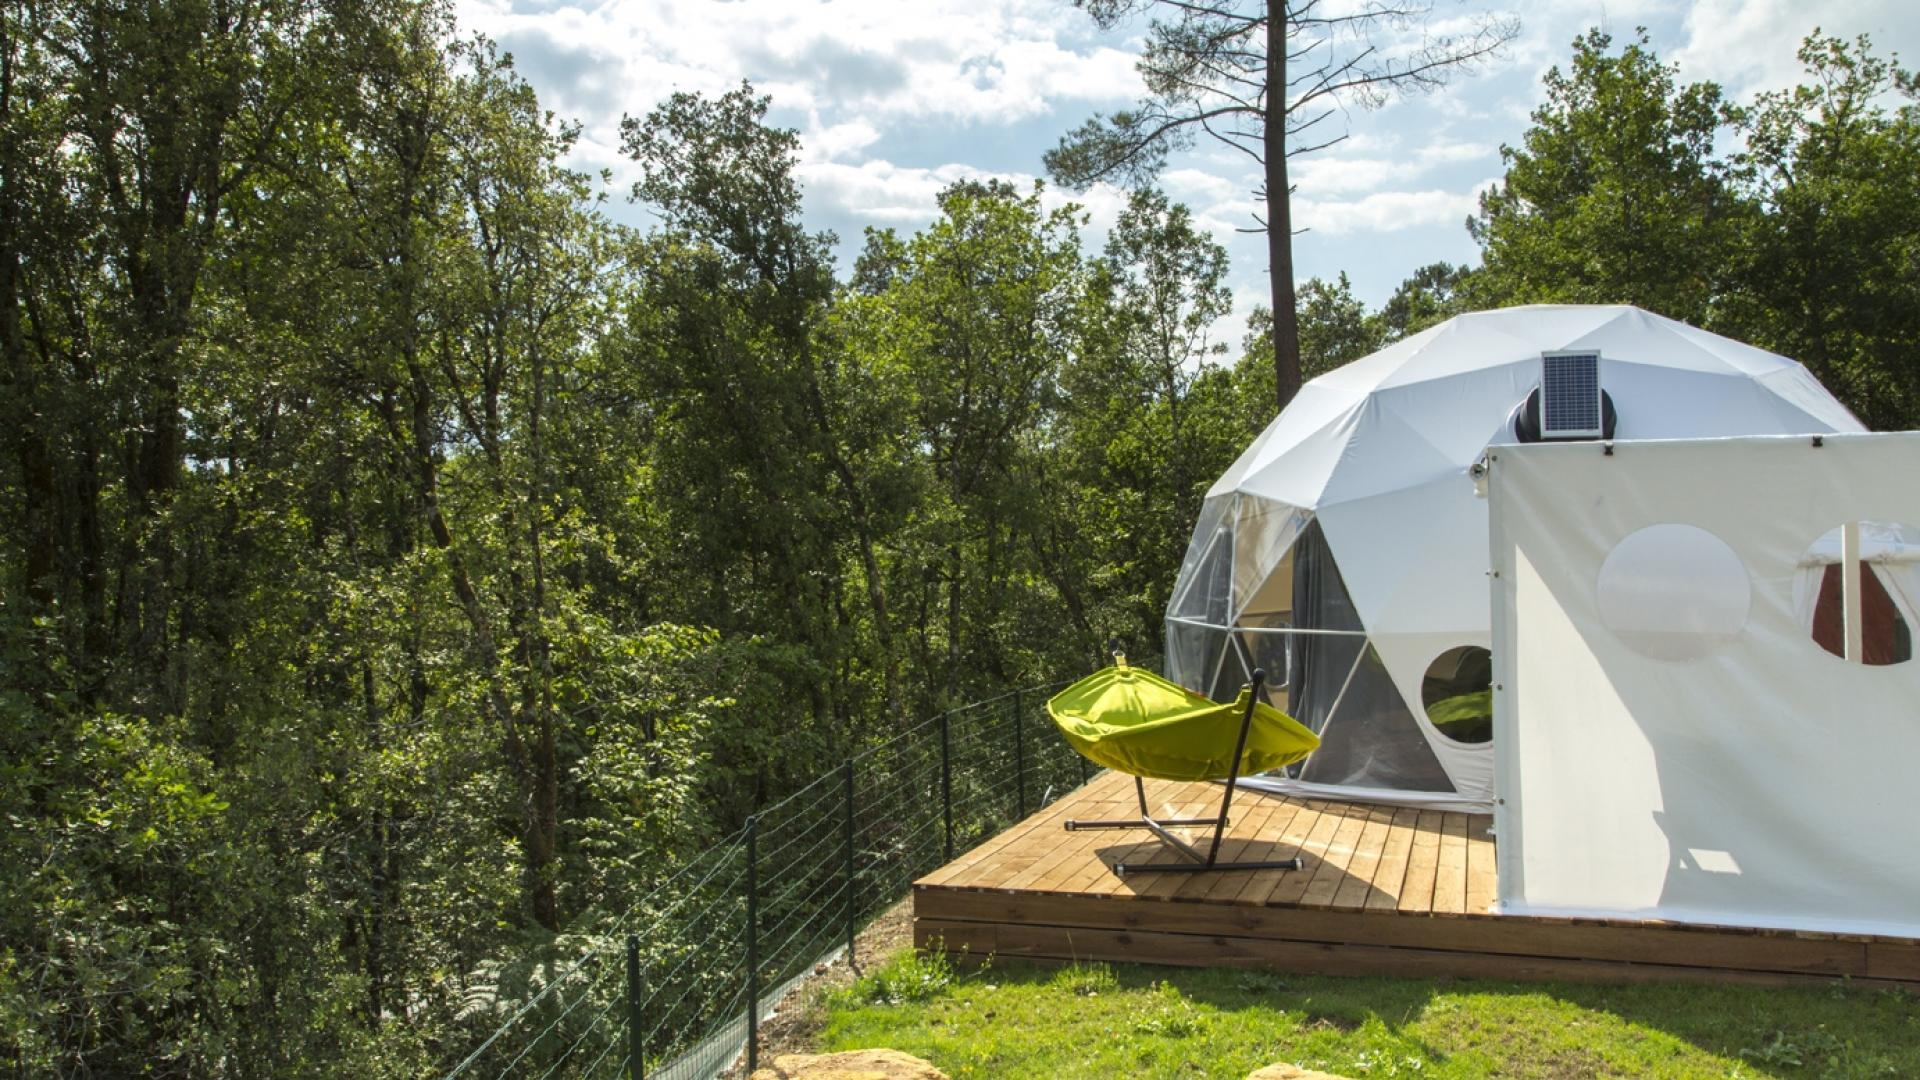 1 Bedroom Glamping/Dome in Aquitaine, France